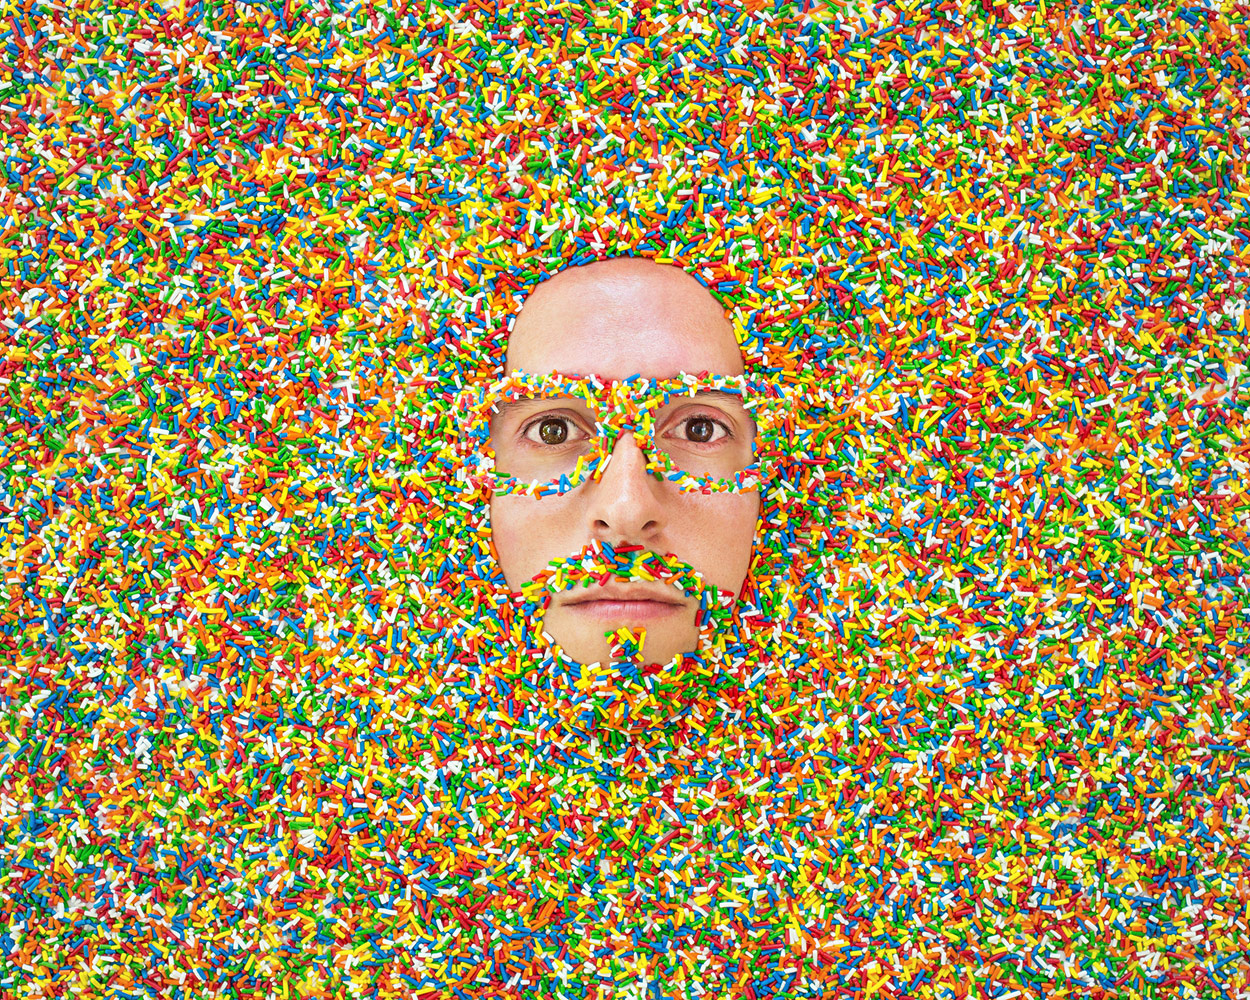 The Sprinkle Show, © Jason Travis, Venice, CA, United States, First Place Professional : Self-Portraits, PDN Faces - Portrait Photography Contest